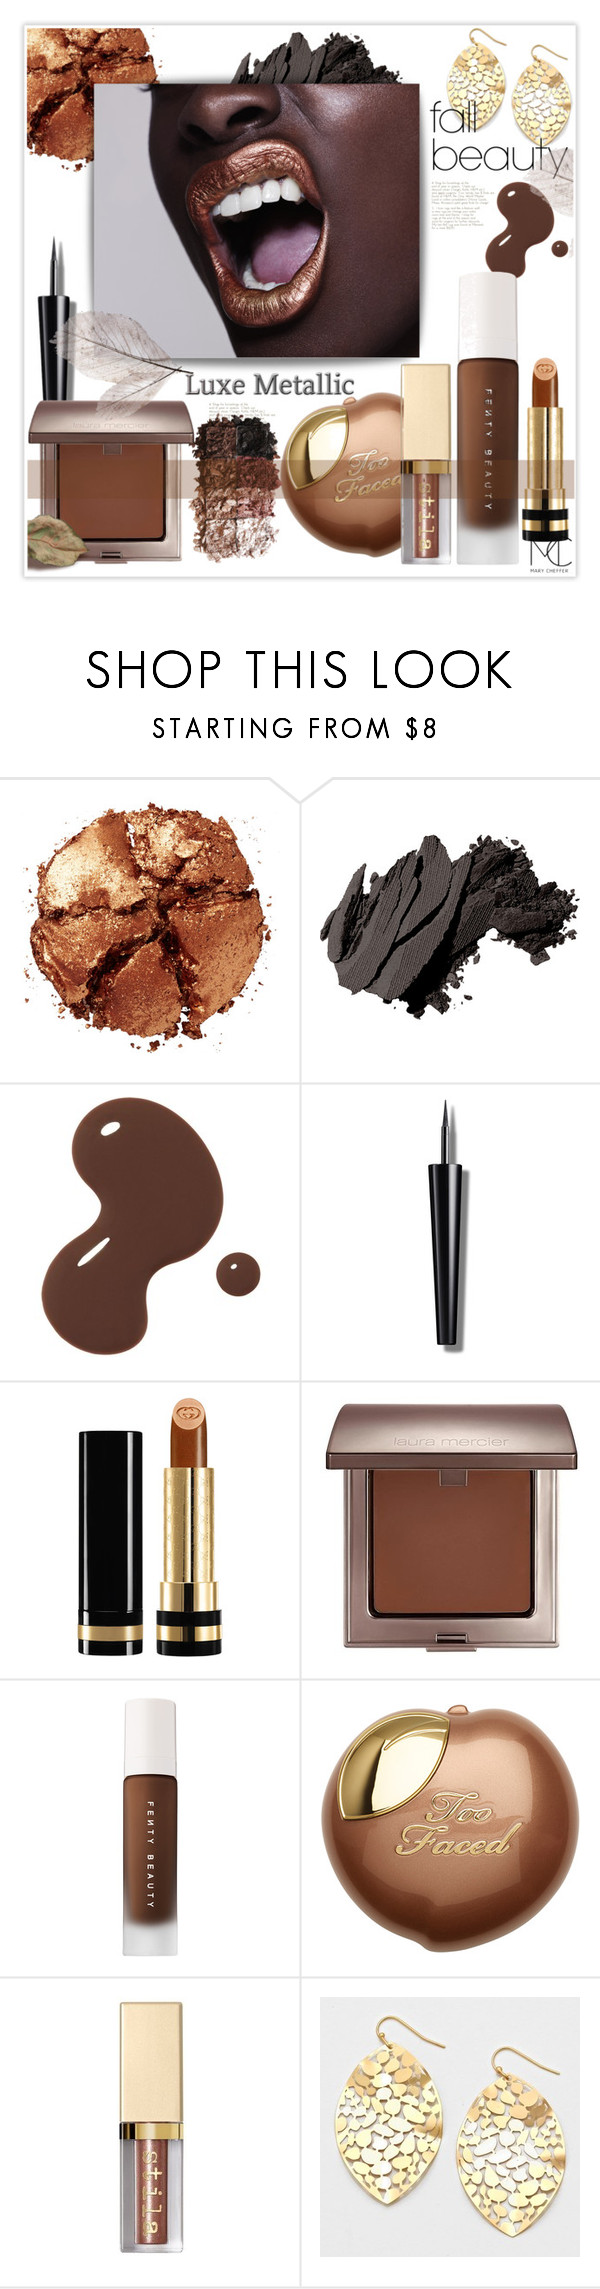 """""""The Best in Fall Beauty"""" by mcheffer ❤ liked on Polyvore featuring beauty, Pat McGrath, Bobbi Brown Cosmetics, Gucci, Laura Mercier, Puma, LORAC and fallbeauty"""